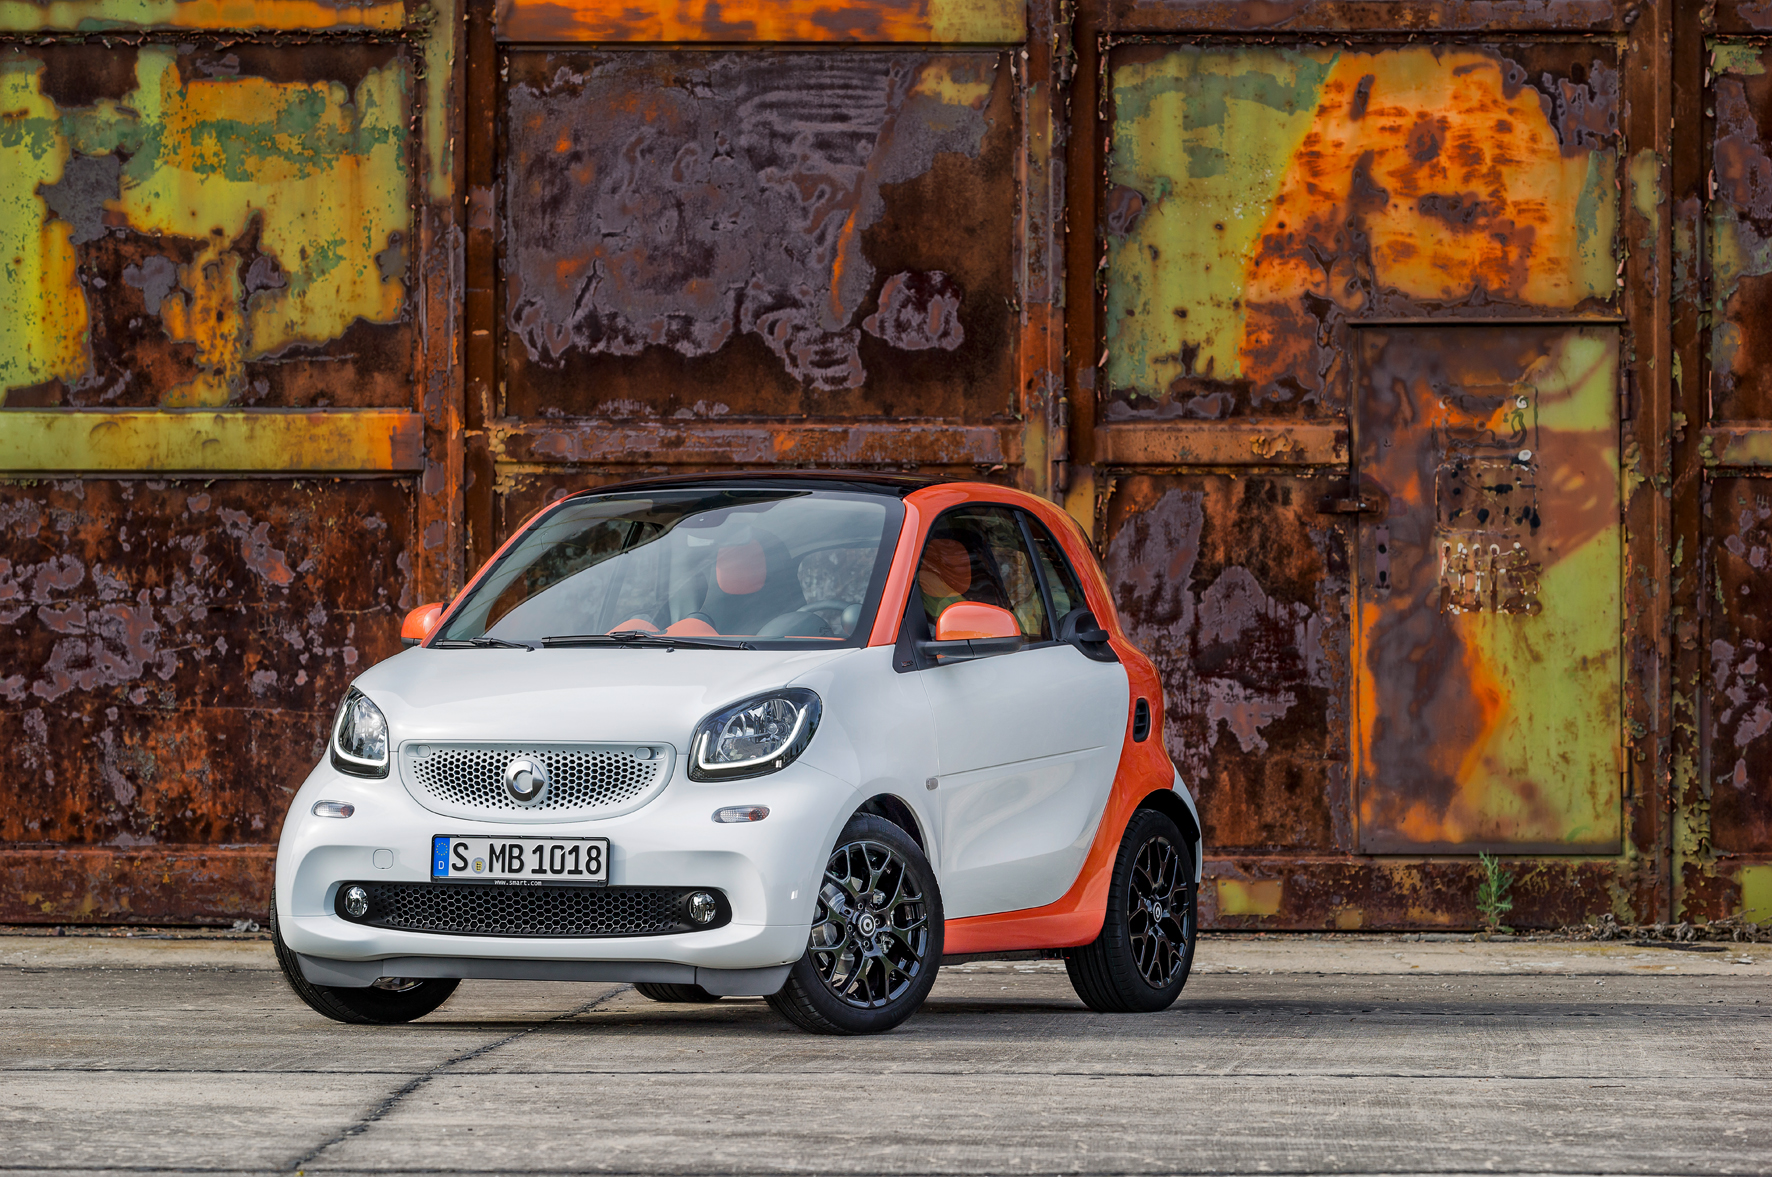 smart fortwo, BR C453, 2014 Bodypanels in white, tridion Sicherheitszelle in lava orange (metallic) Body panels in white, tridion safety cell in lava orange (metallic)